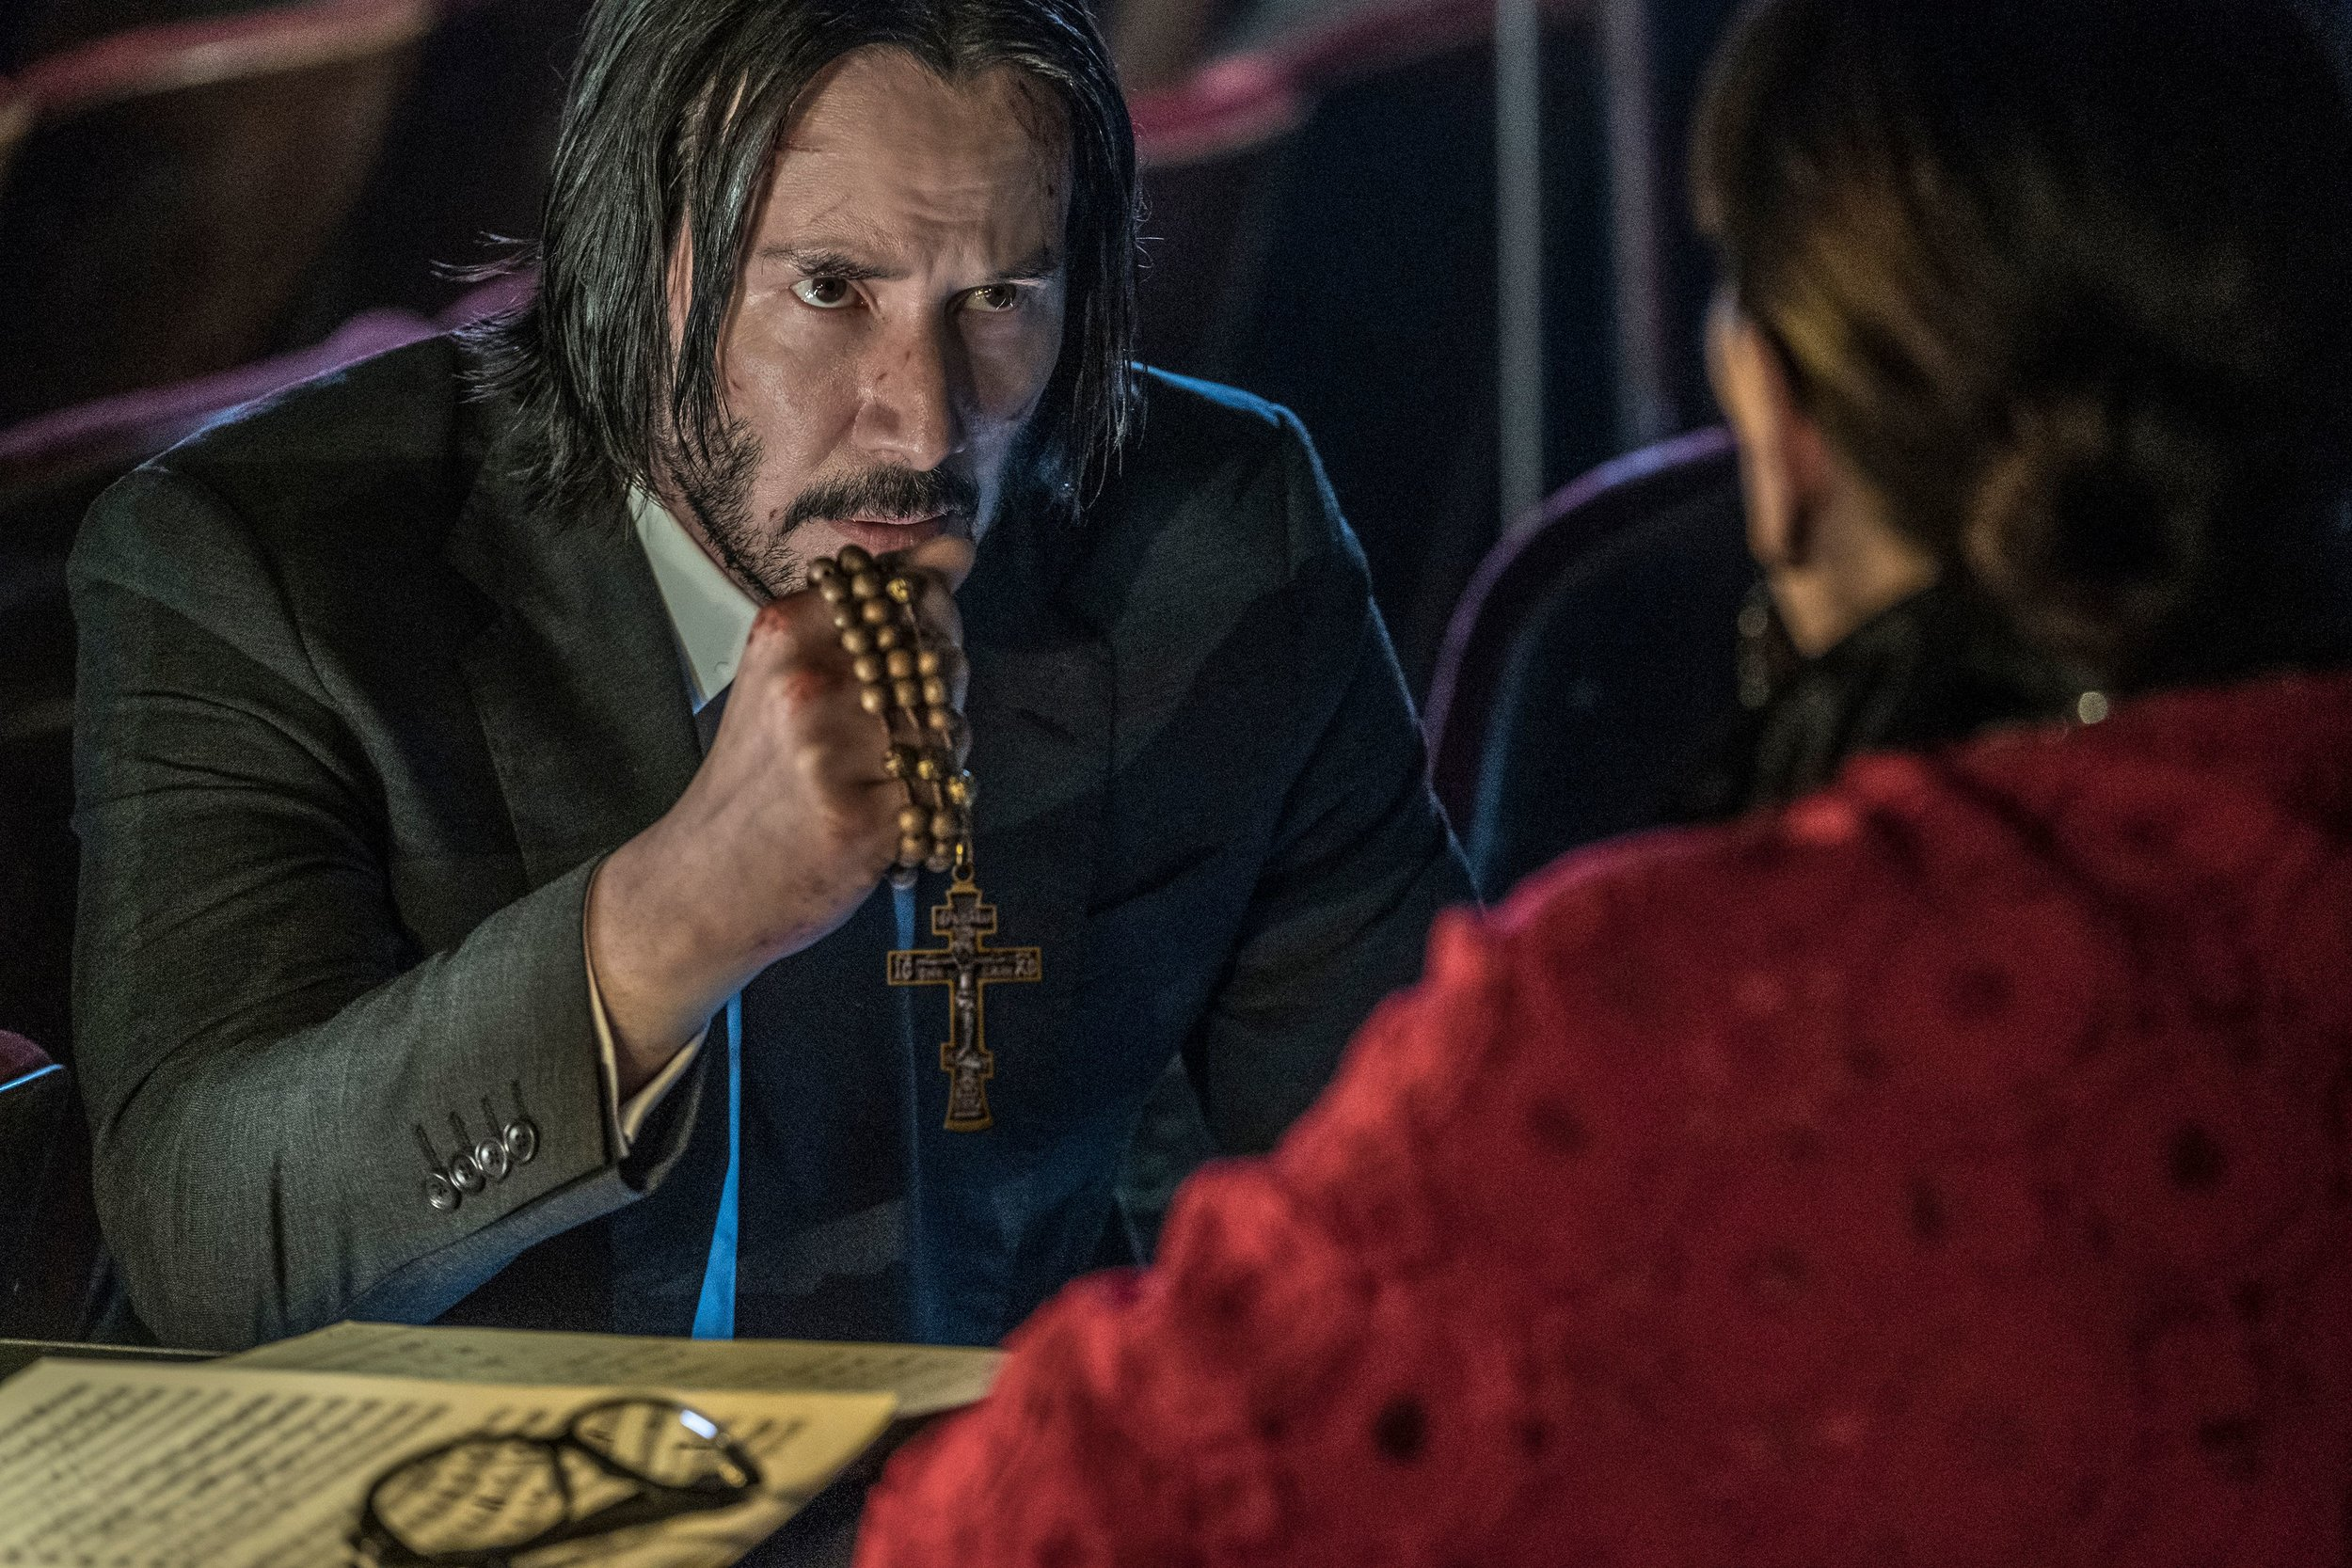 Keanu Reeves & Anjelica Huston in  John Wick: Chapter 3 - Parabellum,  courtesy of Lionsgate